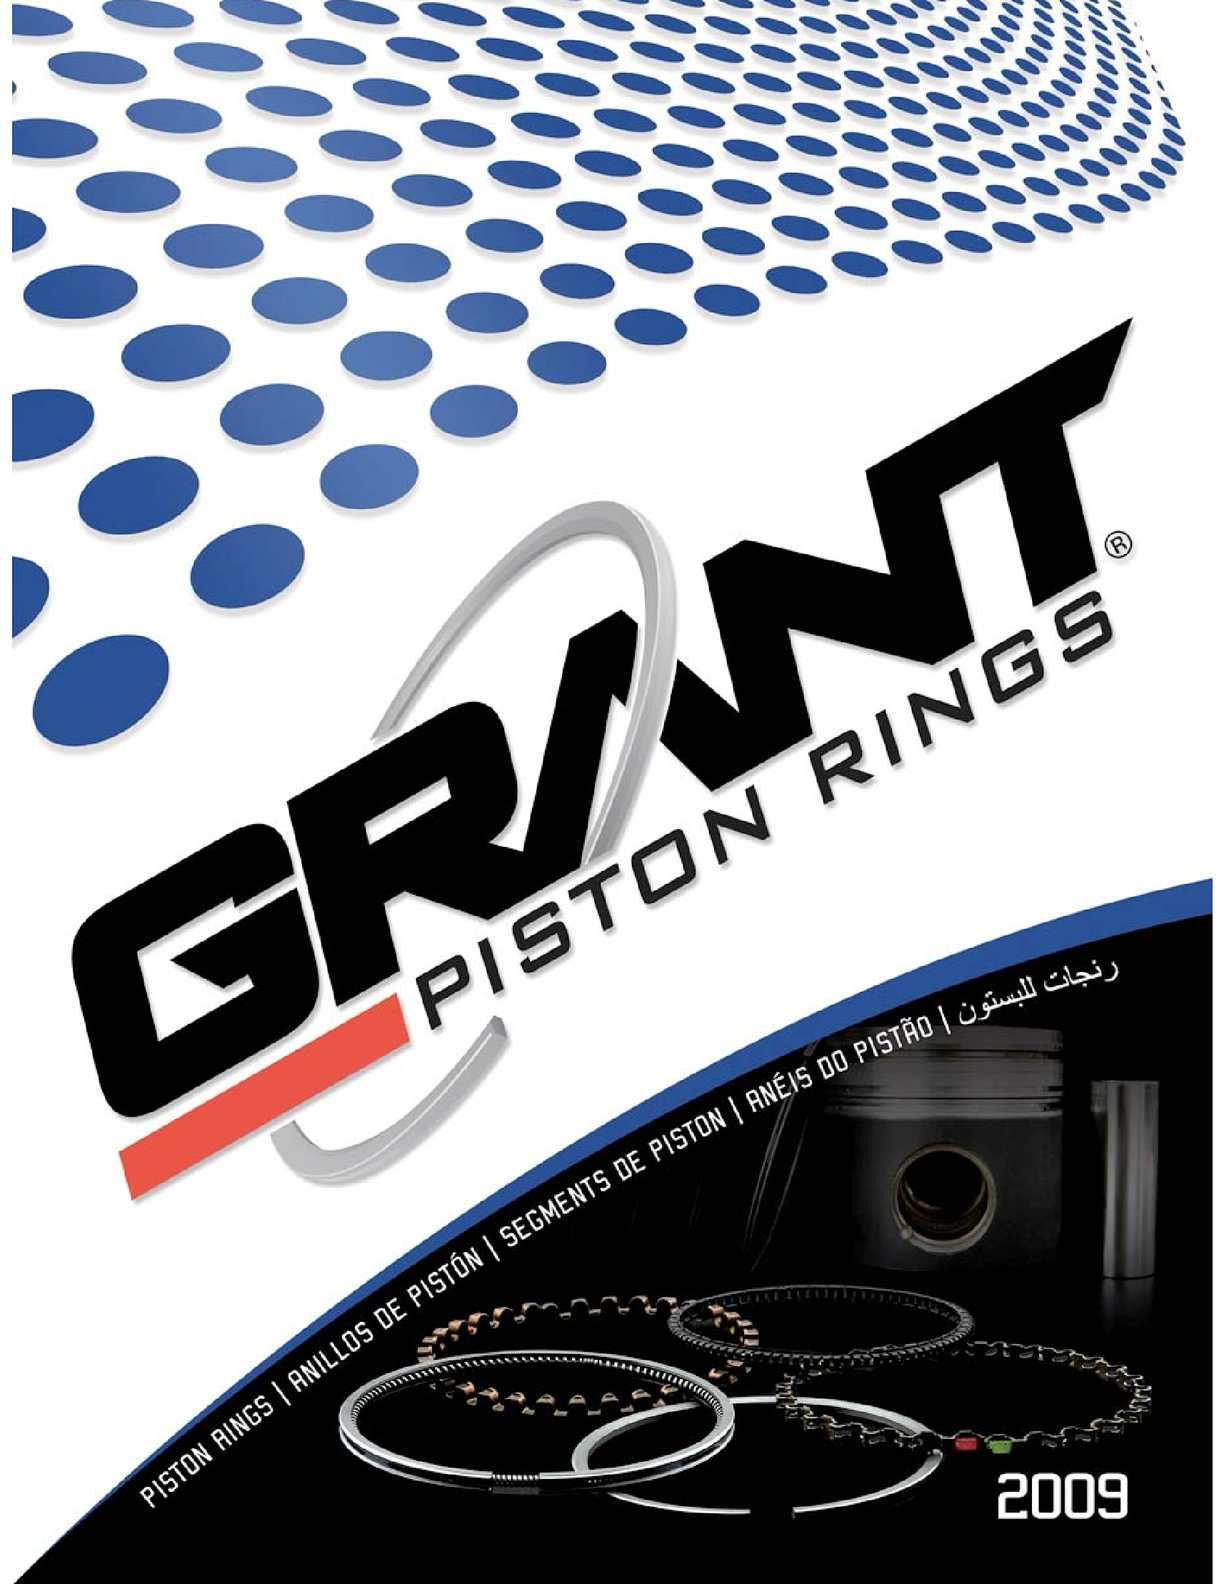 Calamo Grant Piston Ring 2009 1986 Nissan 720 Pickup Wiring Diagram 1988 Z24i